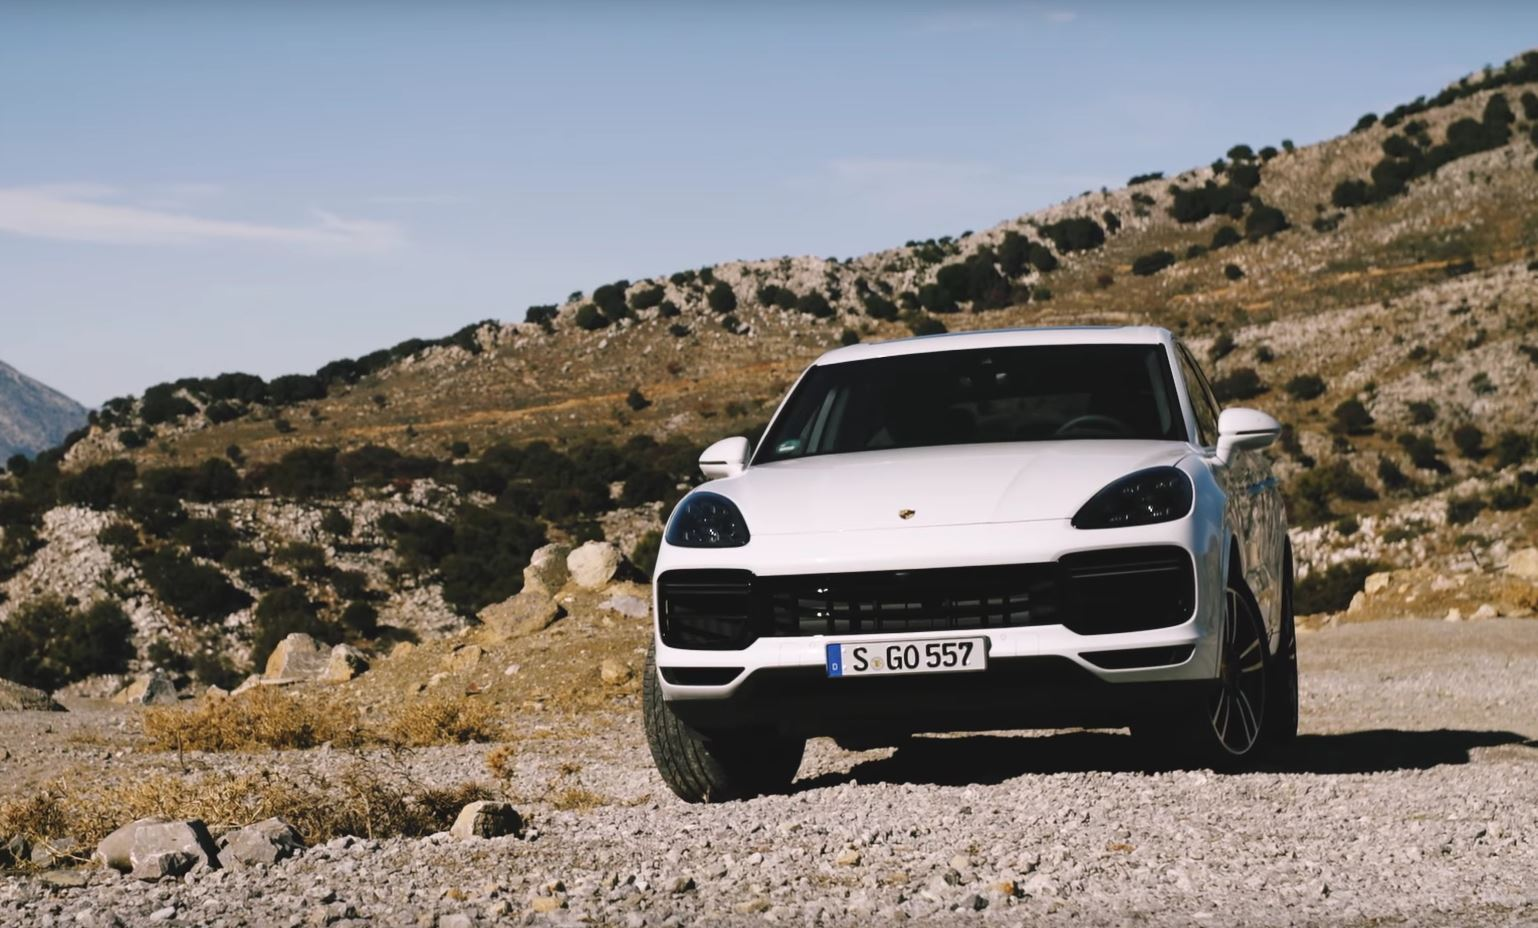 2019 Porsche Cayenne Turbo Review Says Almost Everything ...